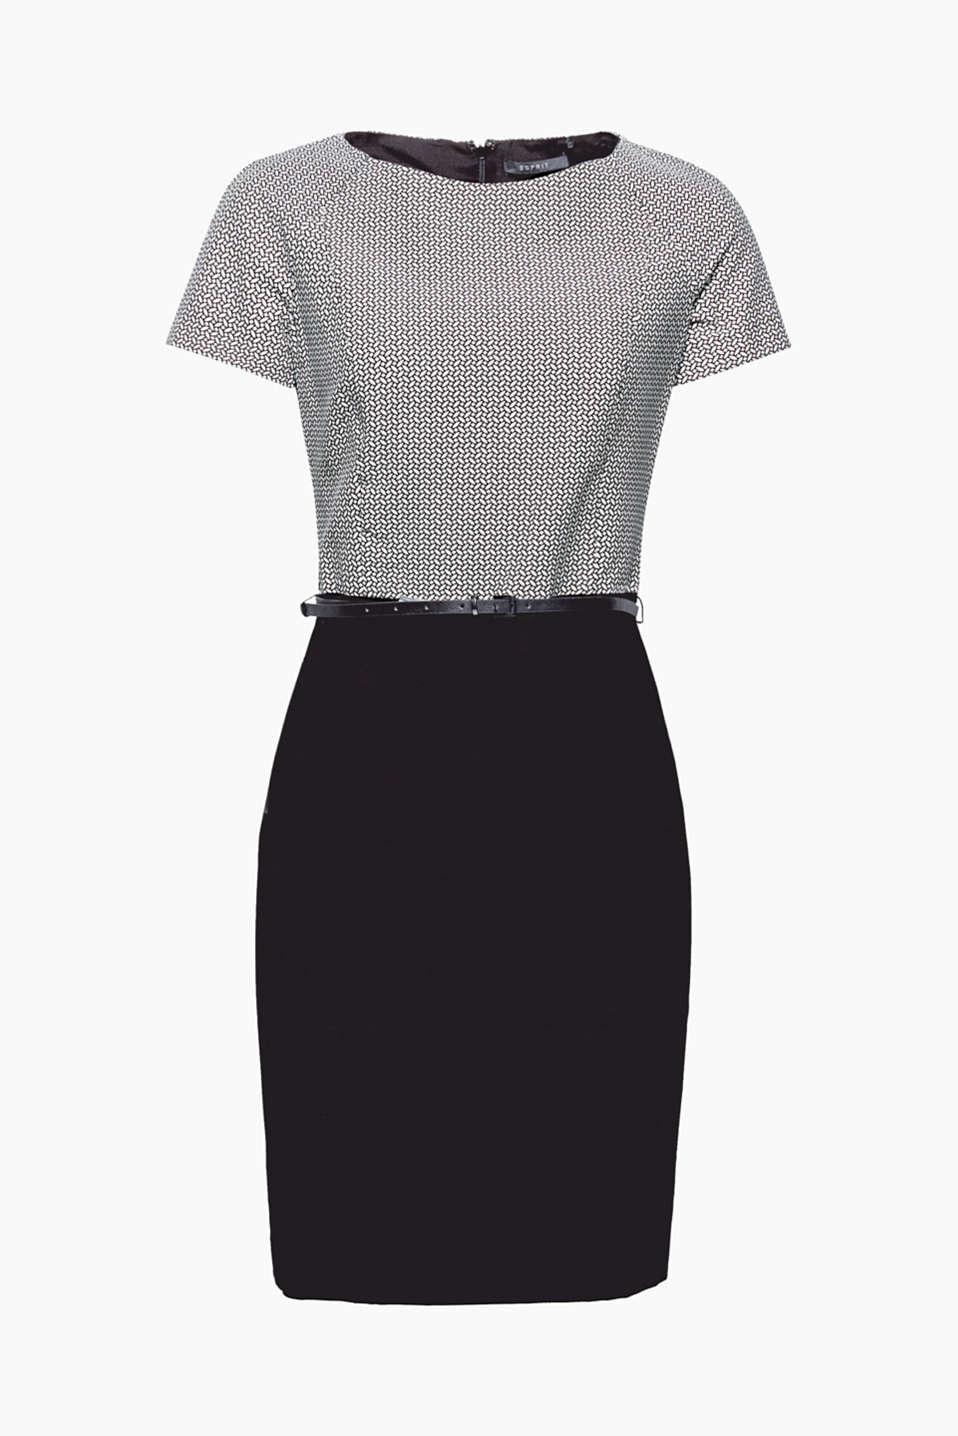 Something different for your business look: sheath dress with a decorative top and a narrow faux leather belt!